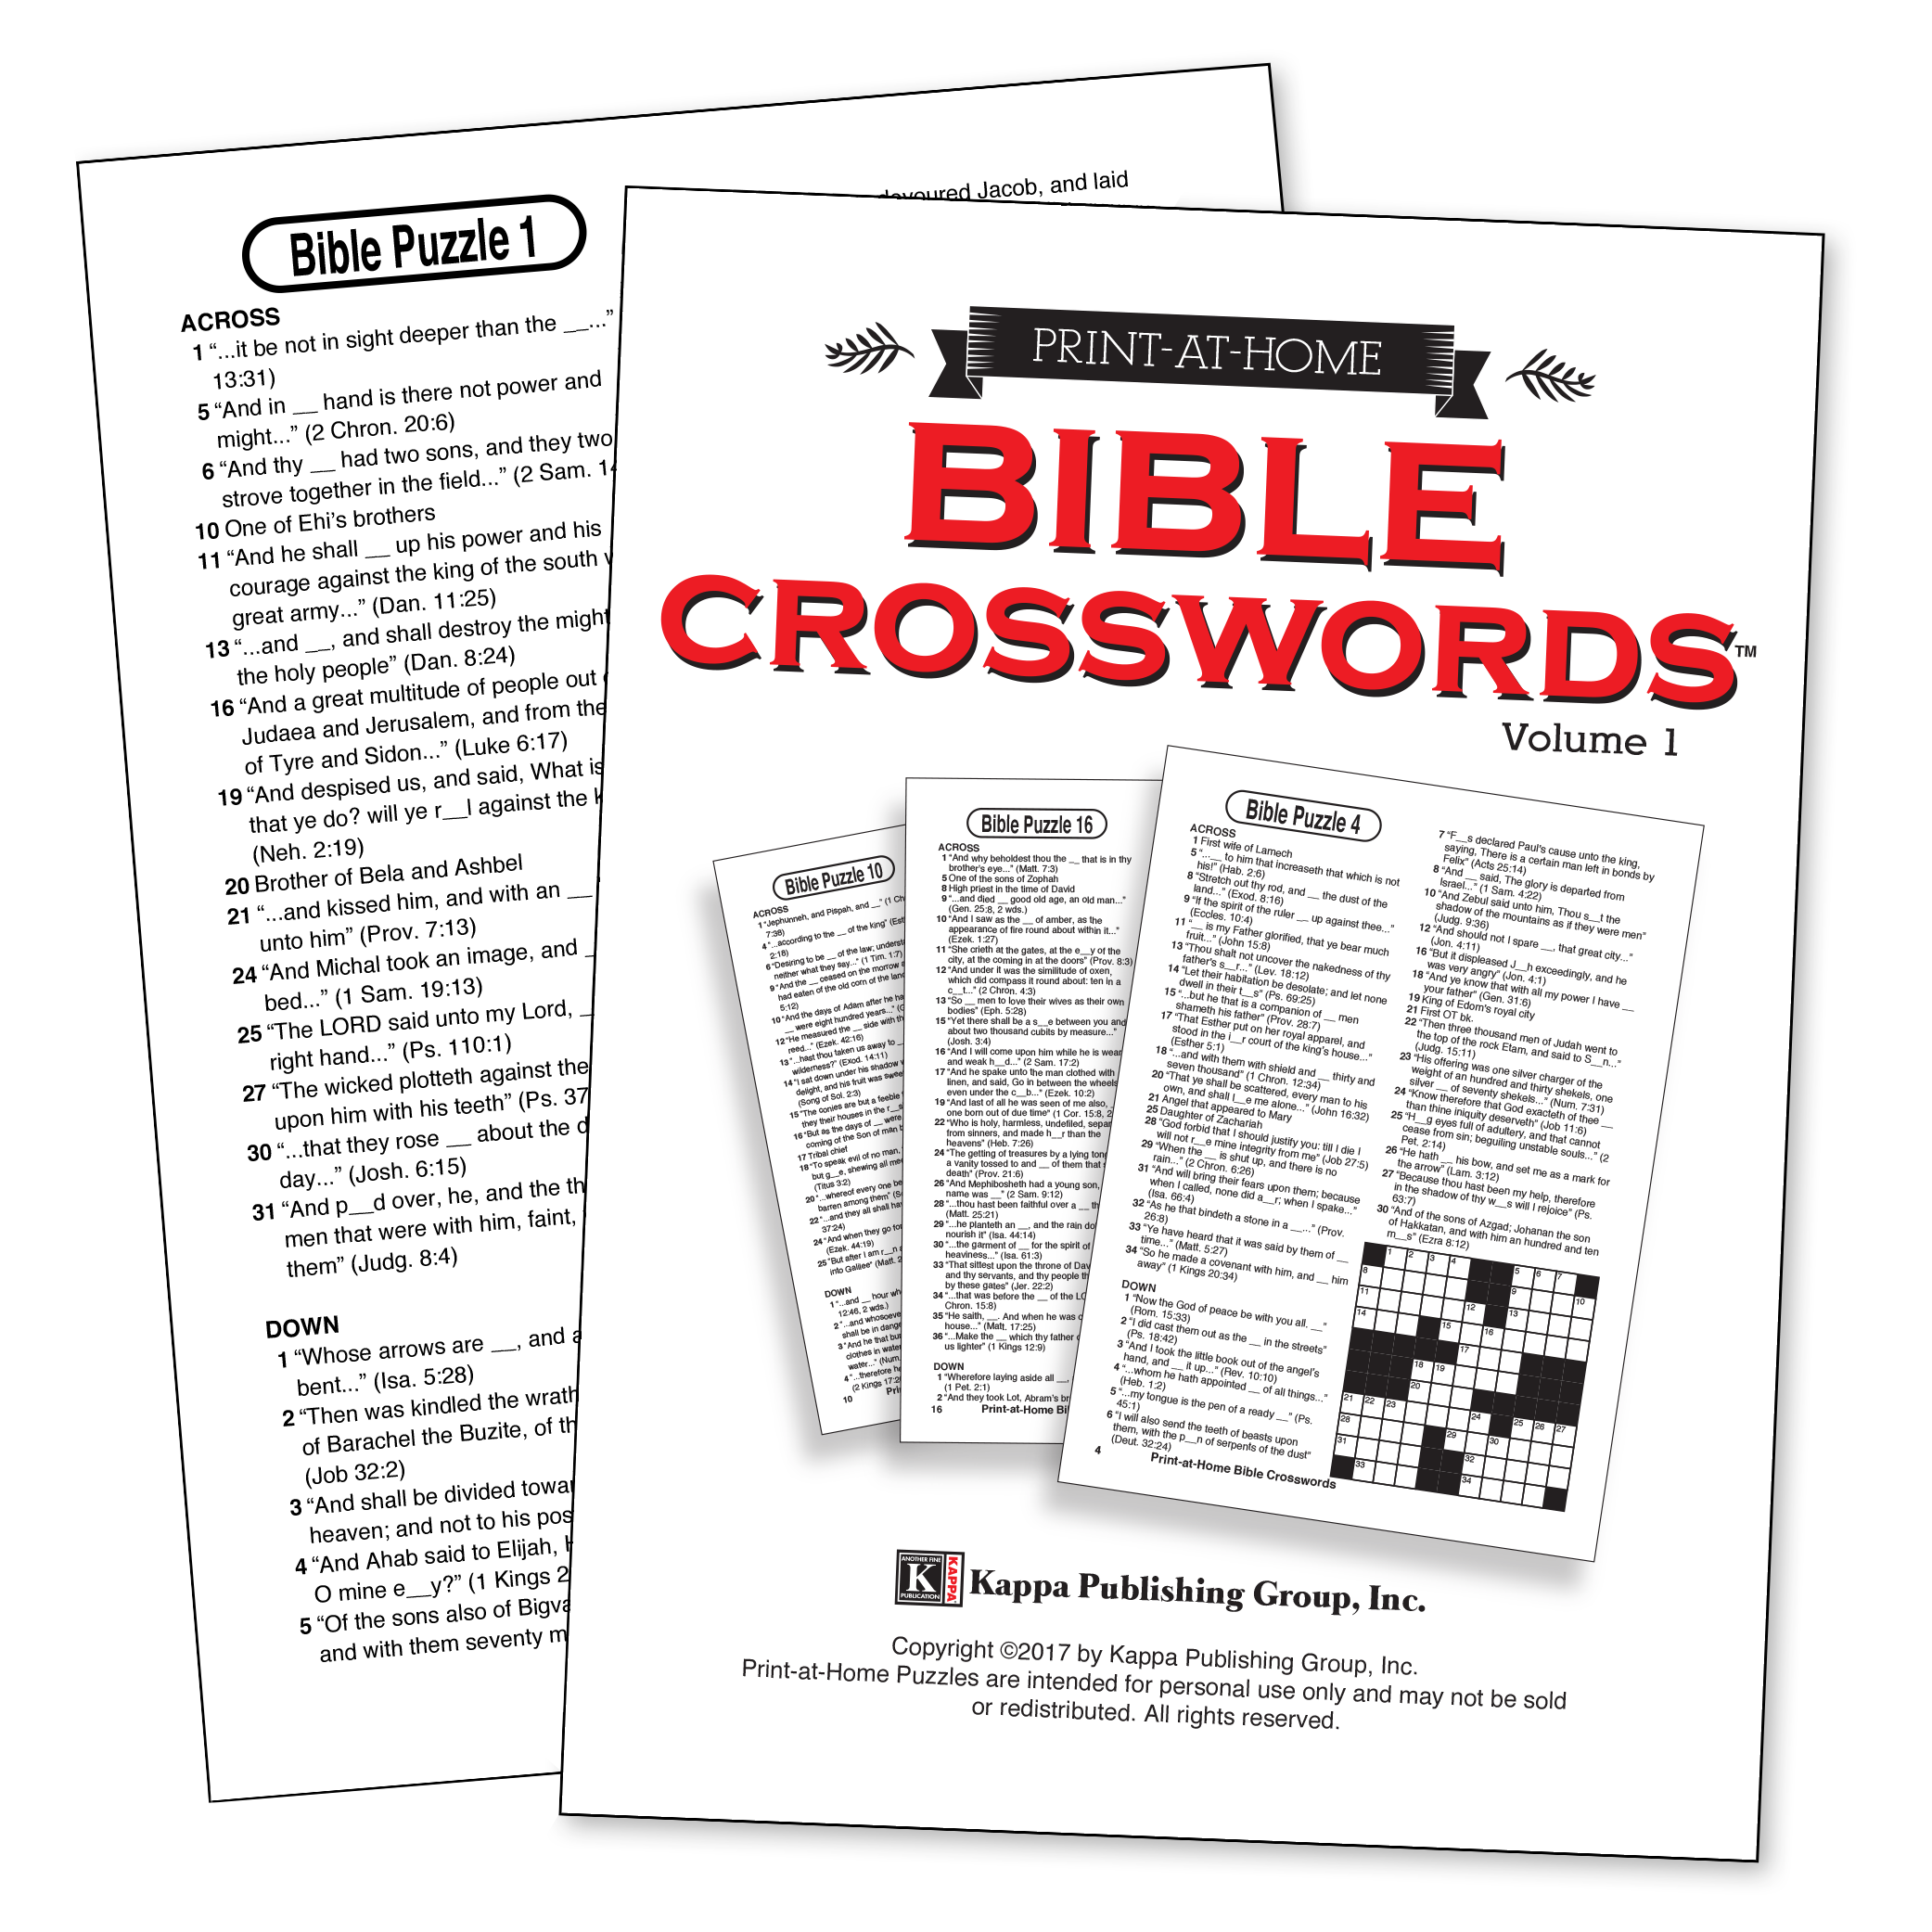 letter after kappa crossword print at home bible crosswords kappa puzzles 4570